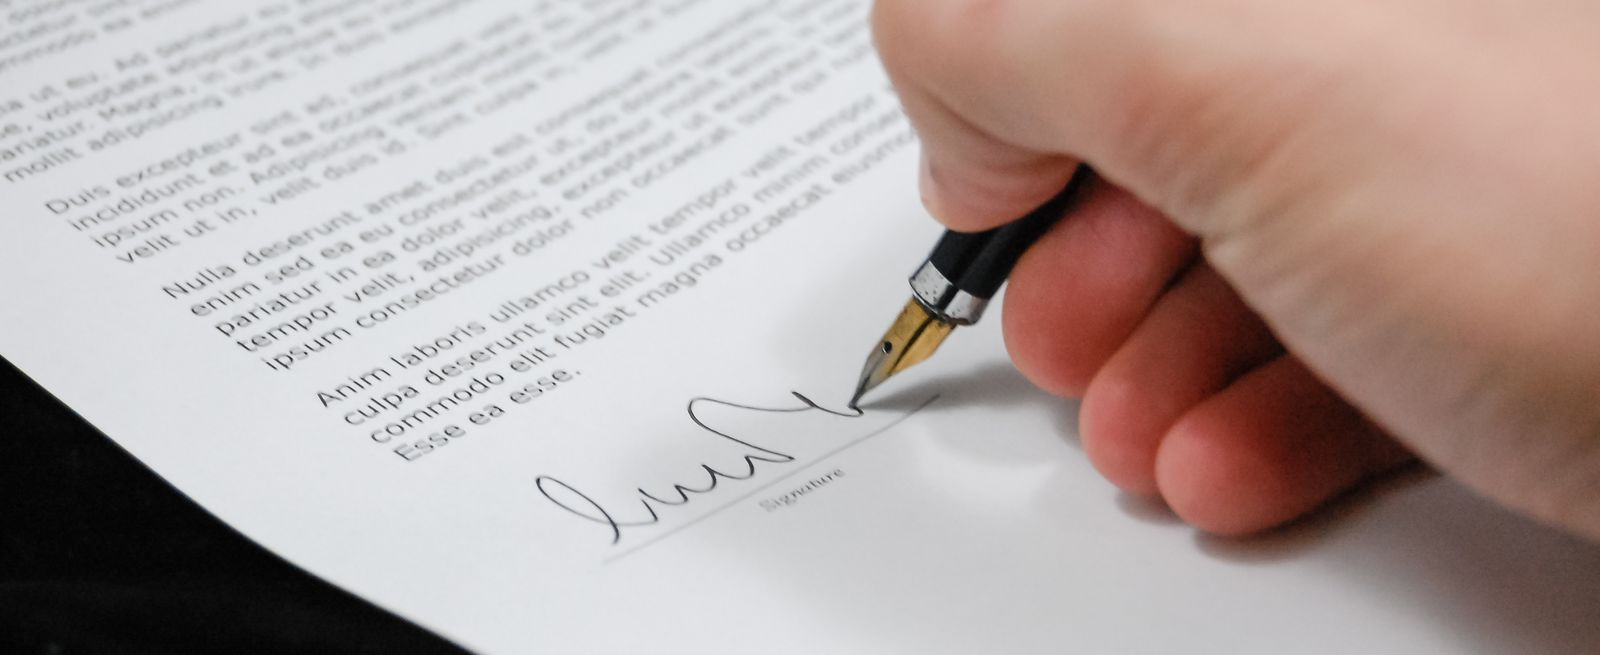 sign document agreement